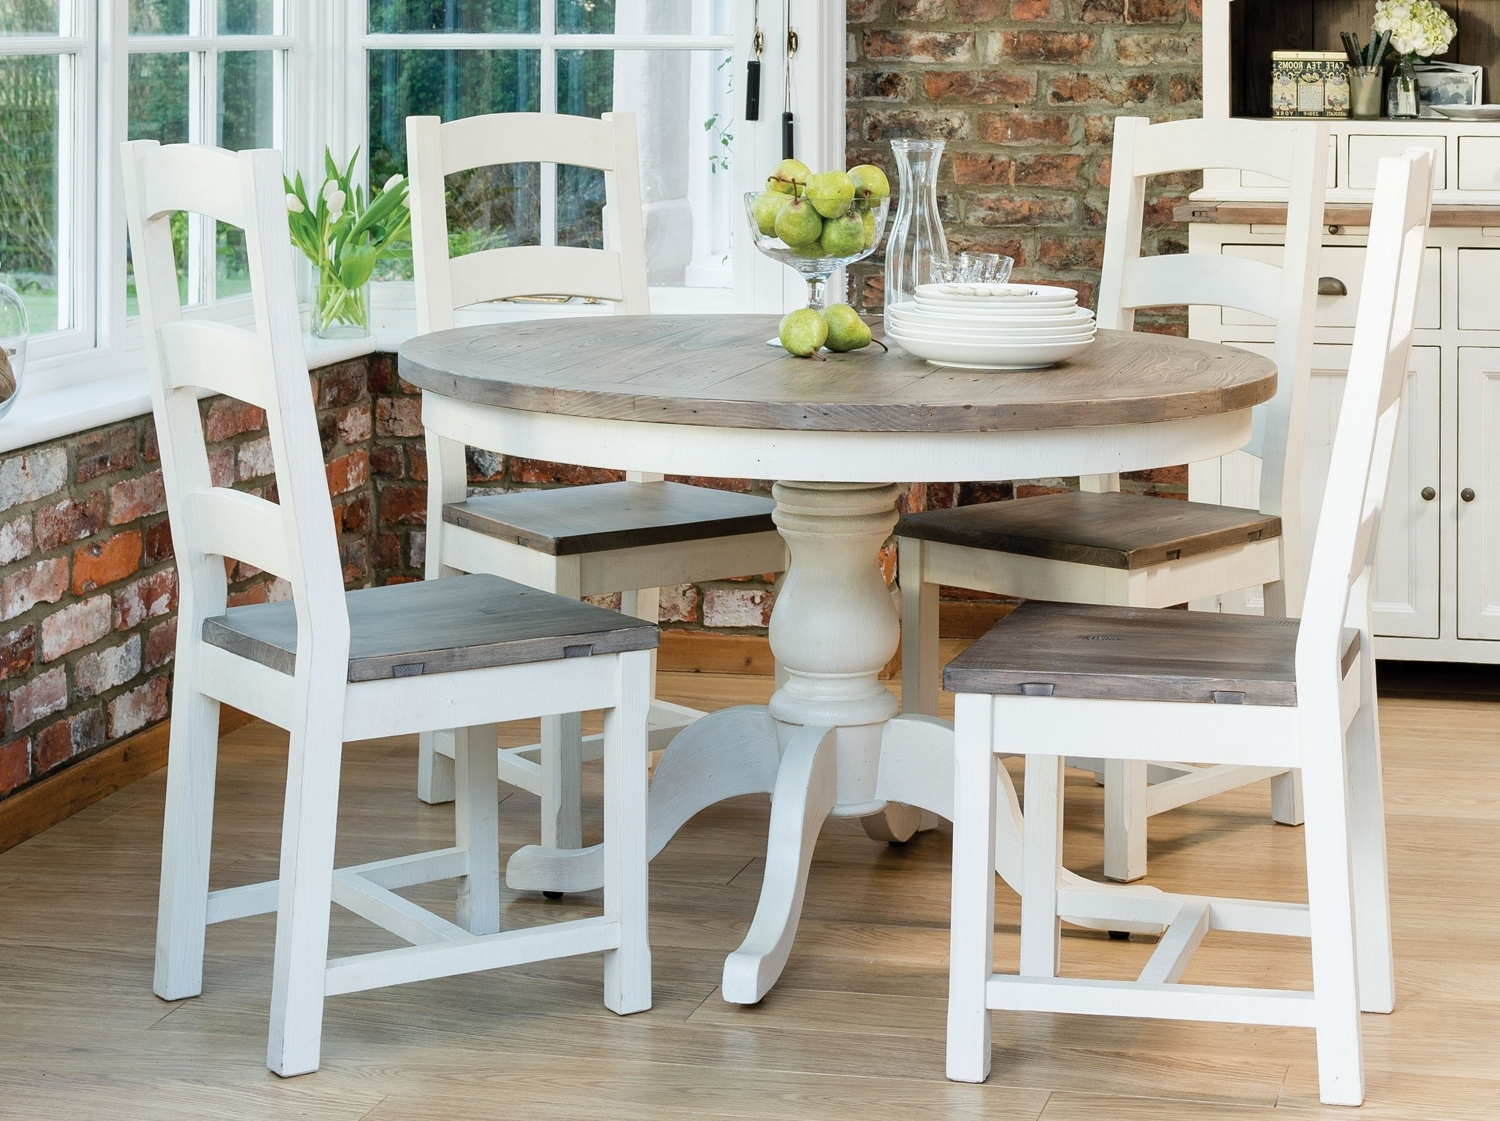 Circular Dining Tables For Latest French Country Round Dining Table From Dansk (View 4 of 25)